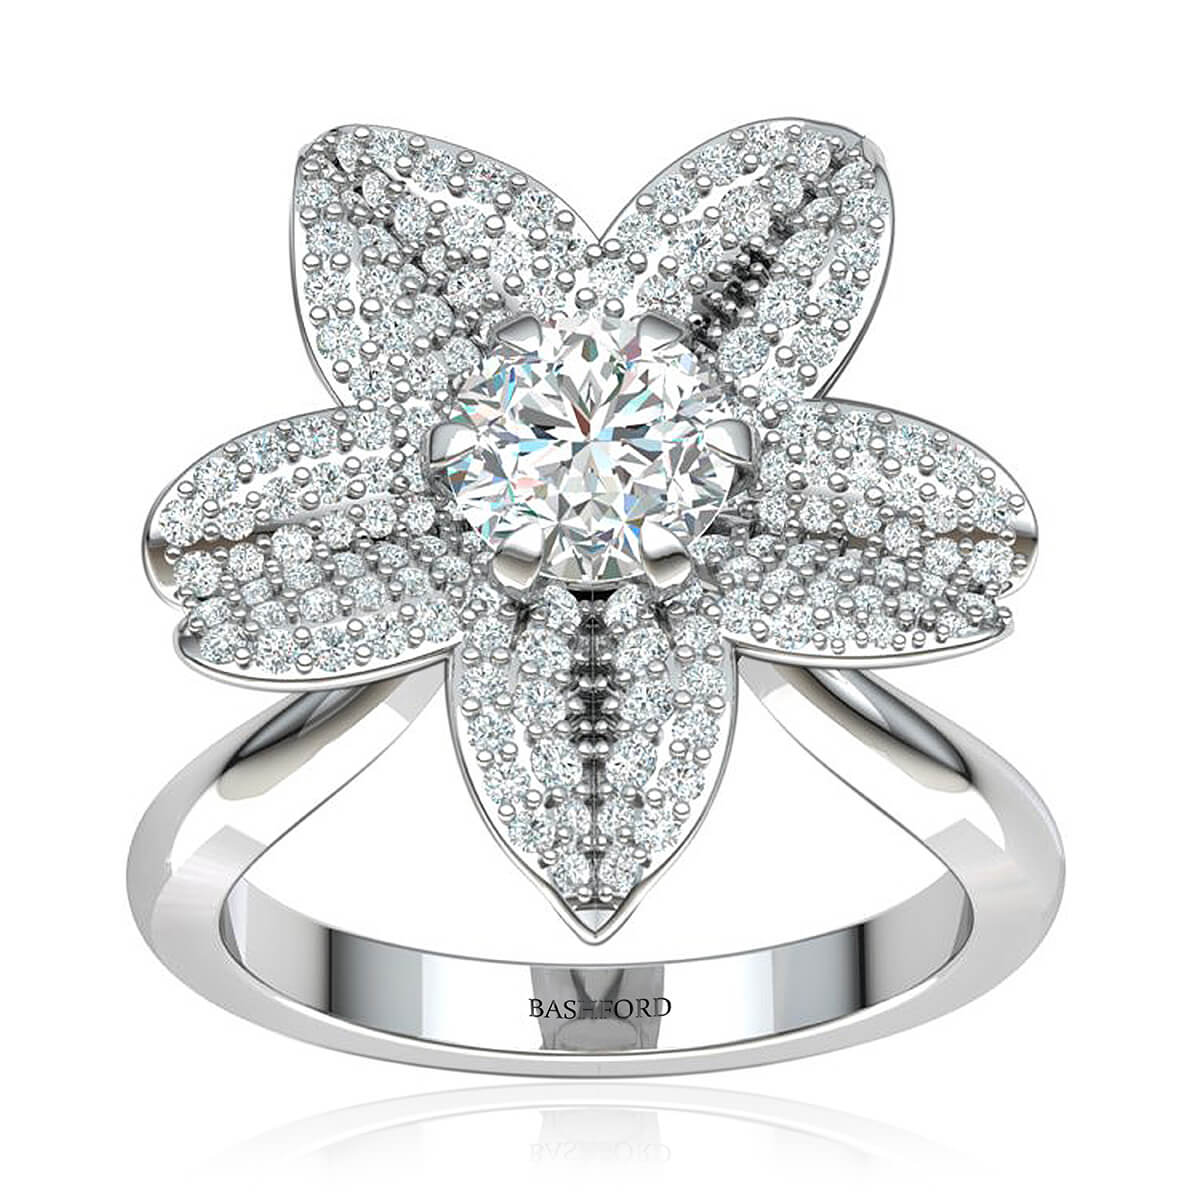 The Daffodil Diamond Ring